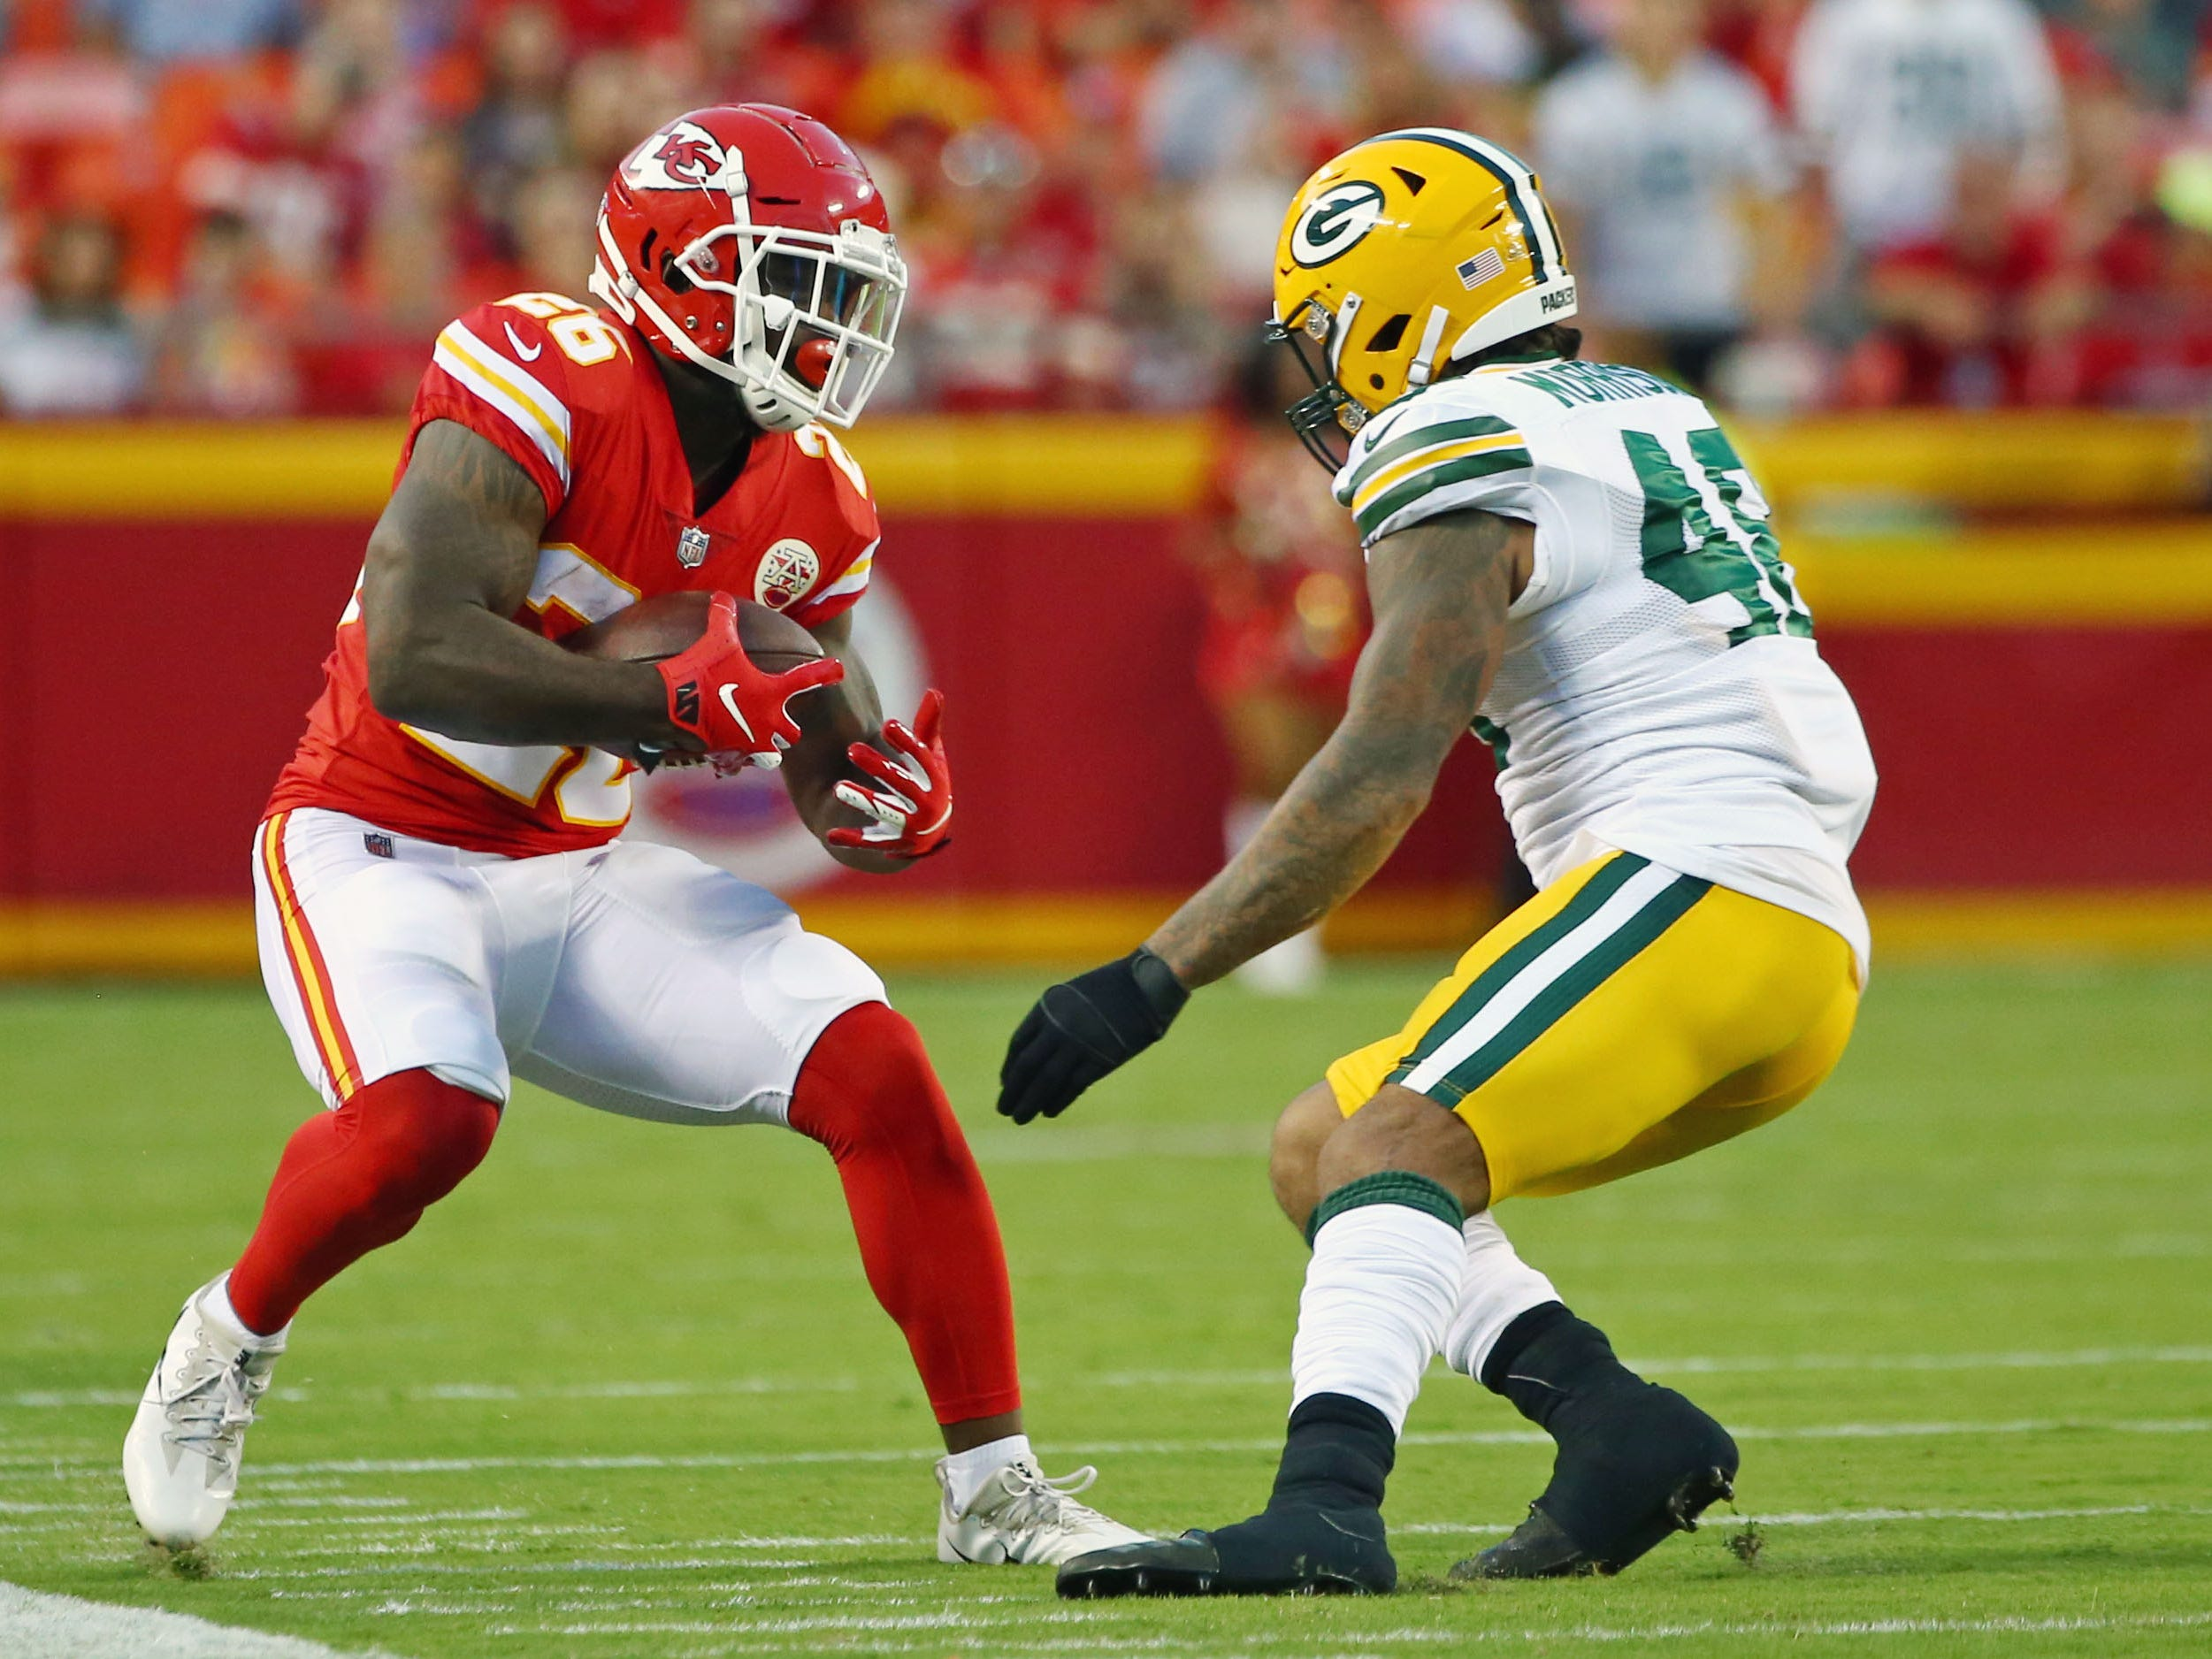 Aug 30, 2018; Kansas City, MO, USA; Kansas City Chiefs running back Damien Williams (26) runs against Green Bay Packers linebacker Antonio Morrison (48) in the first half at Arrowhead Stadium.